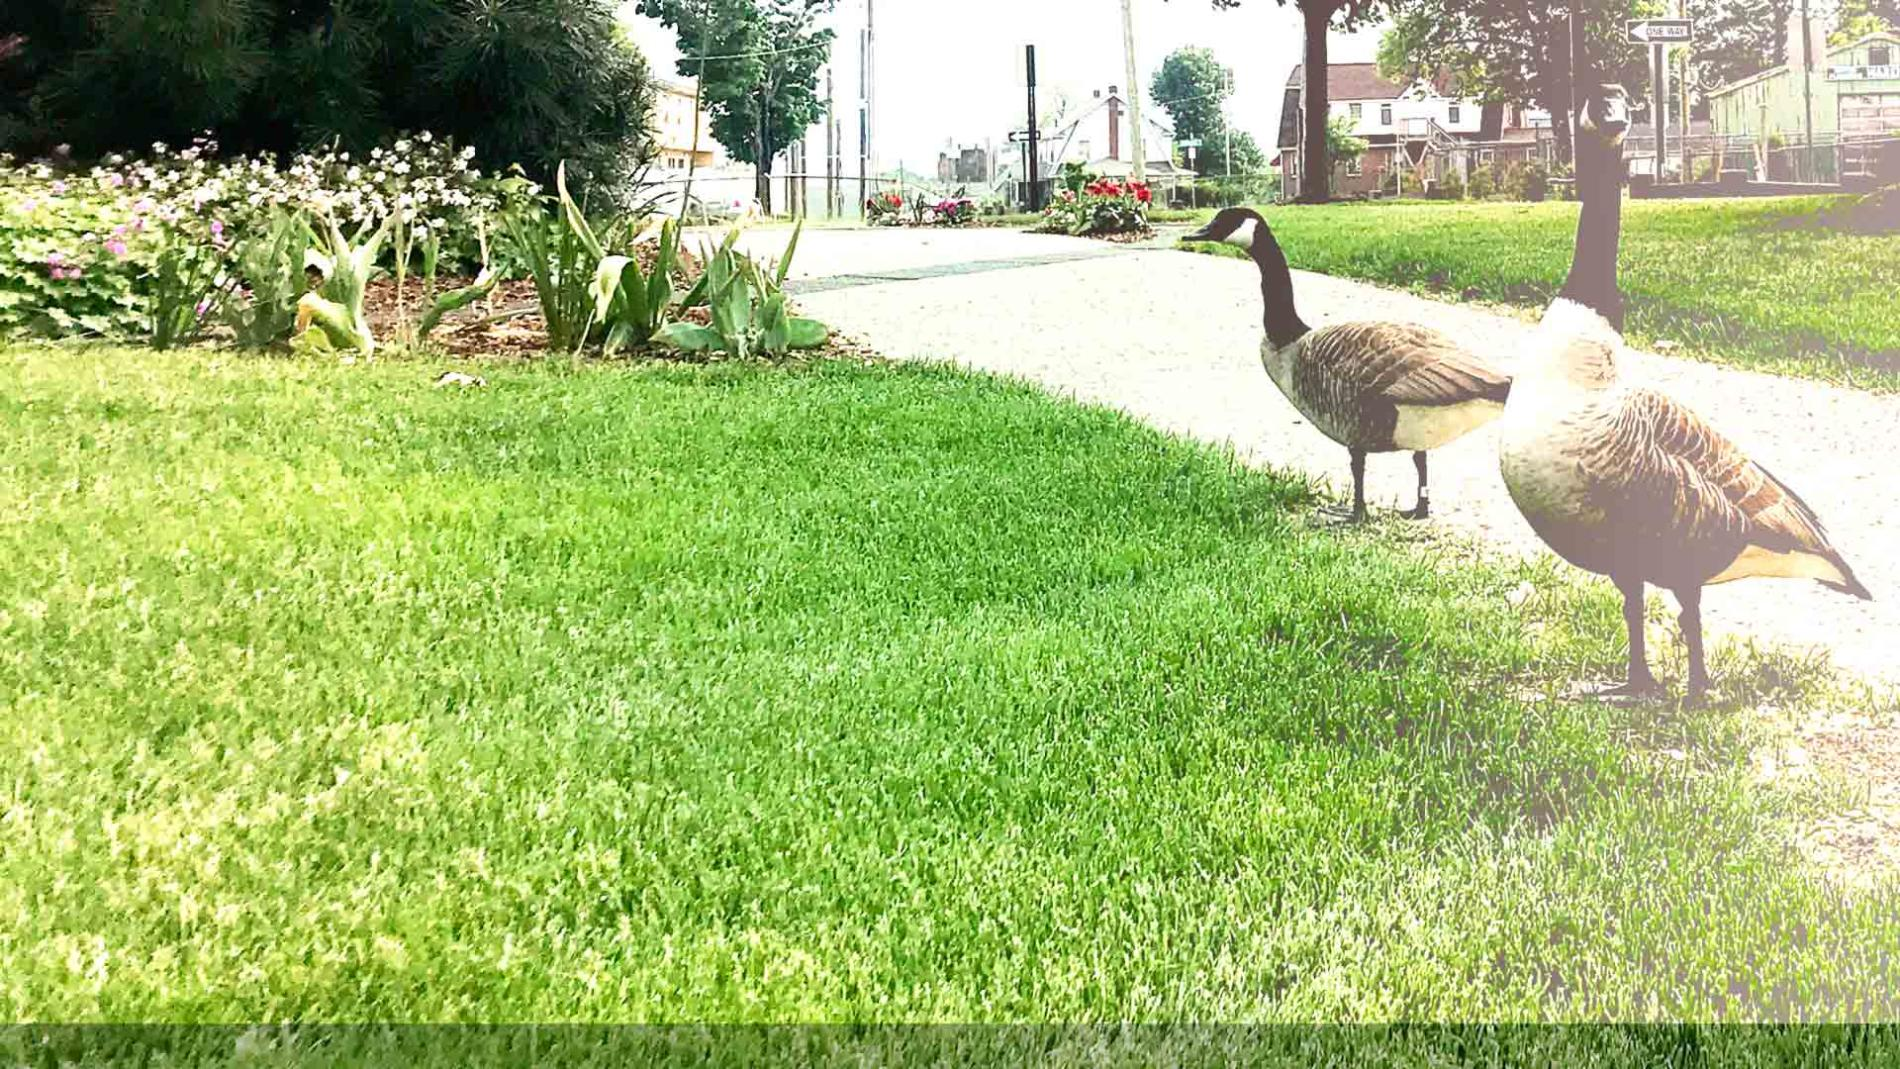 Rule-bending Geese on grass